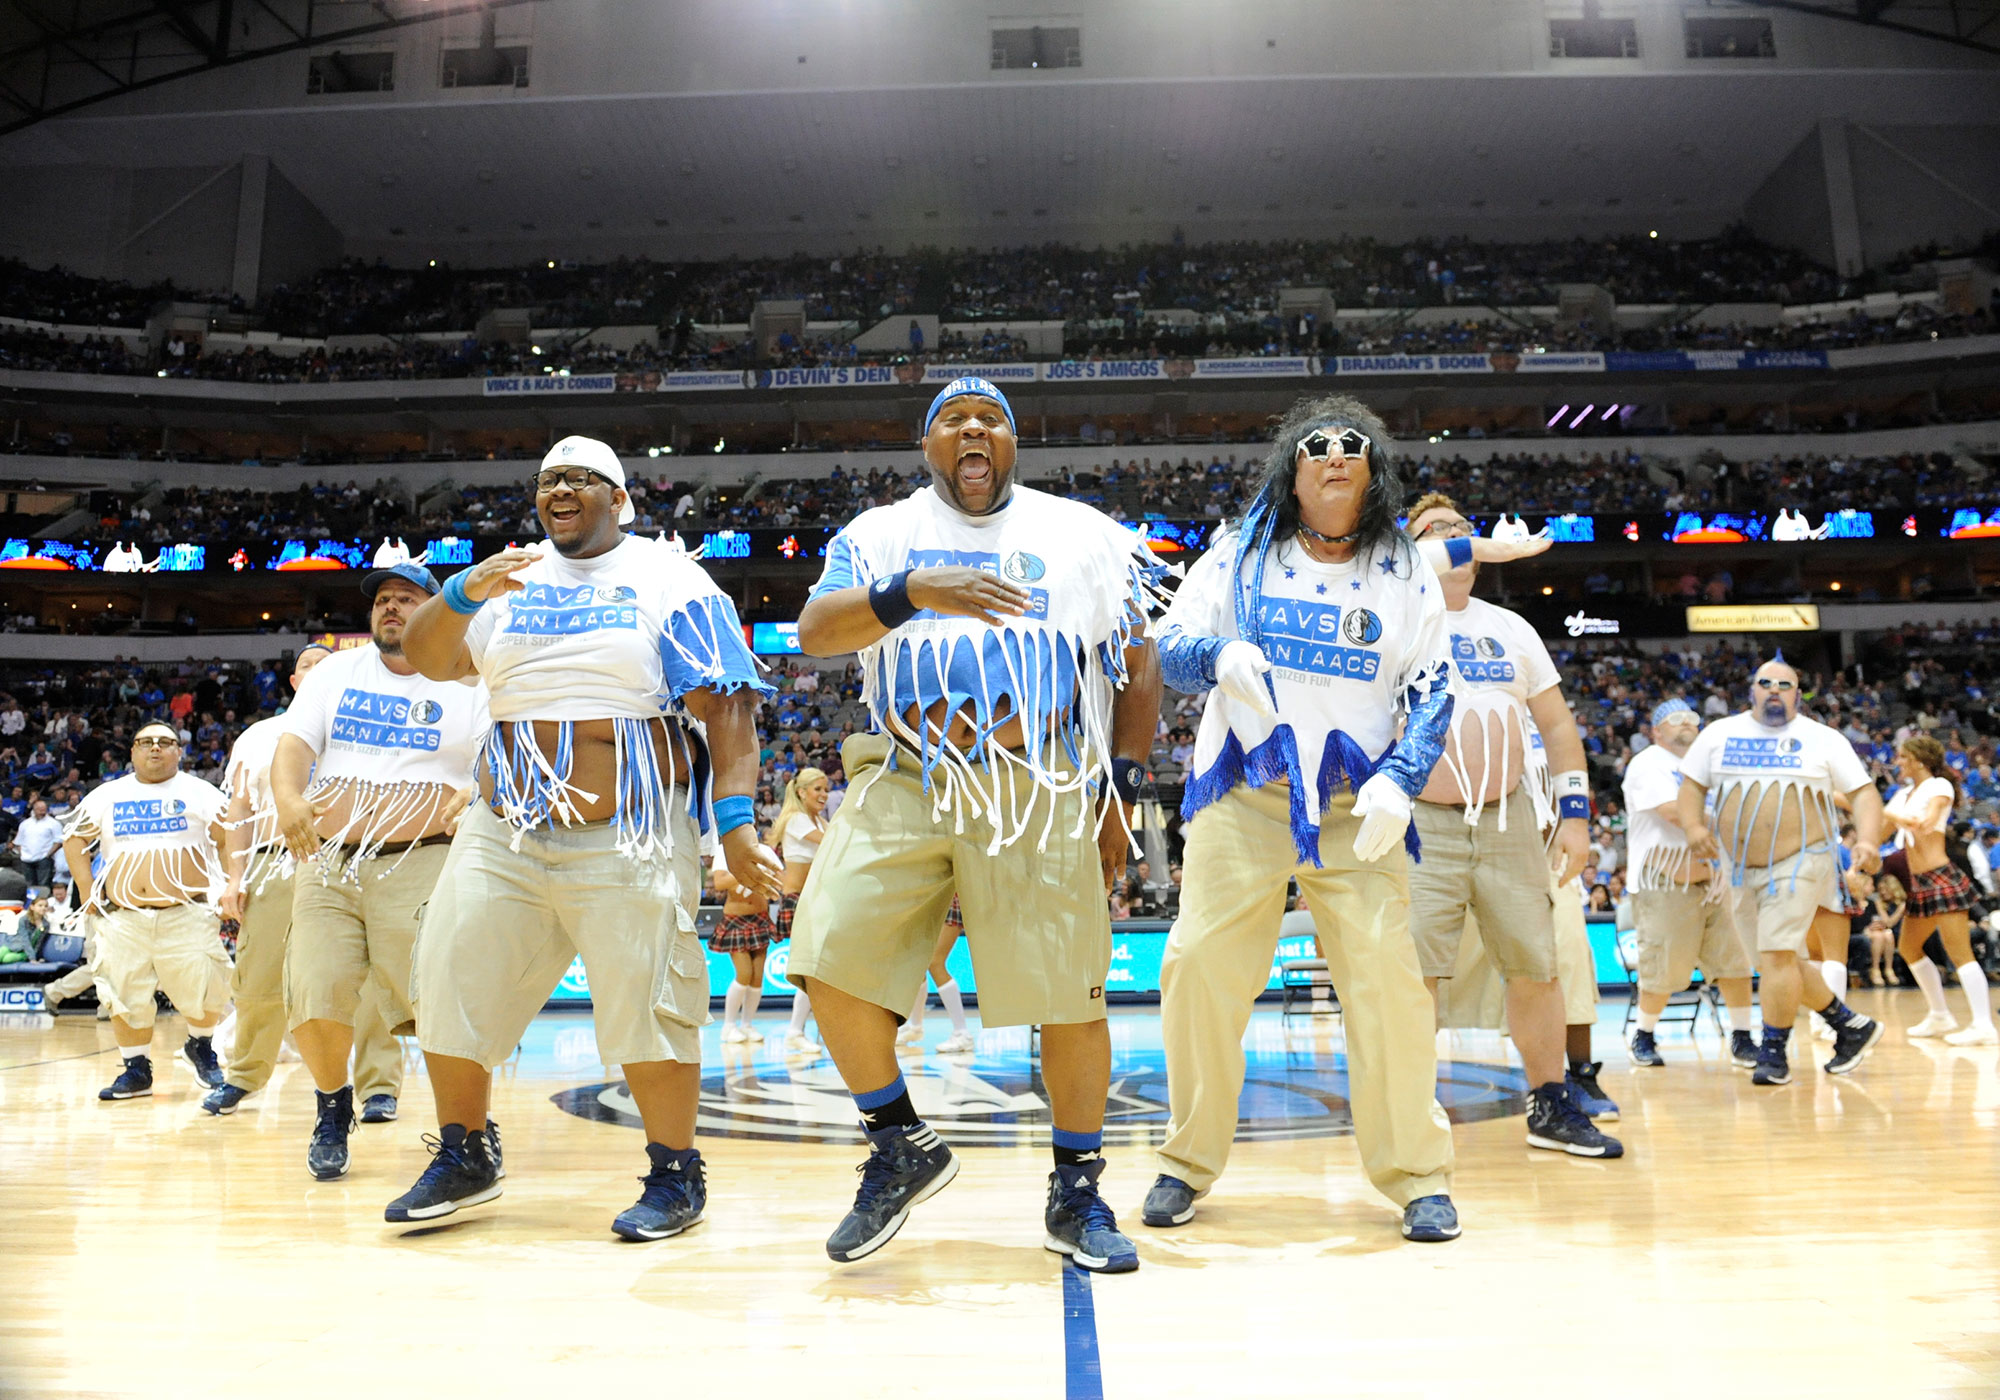 The Mavs ManiAACs perform during an NBA game between the Golden State Warriors and the Dallas Mavericks at the American Airlines Center in Dallas, TX on April 1, 2014.